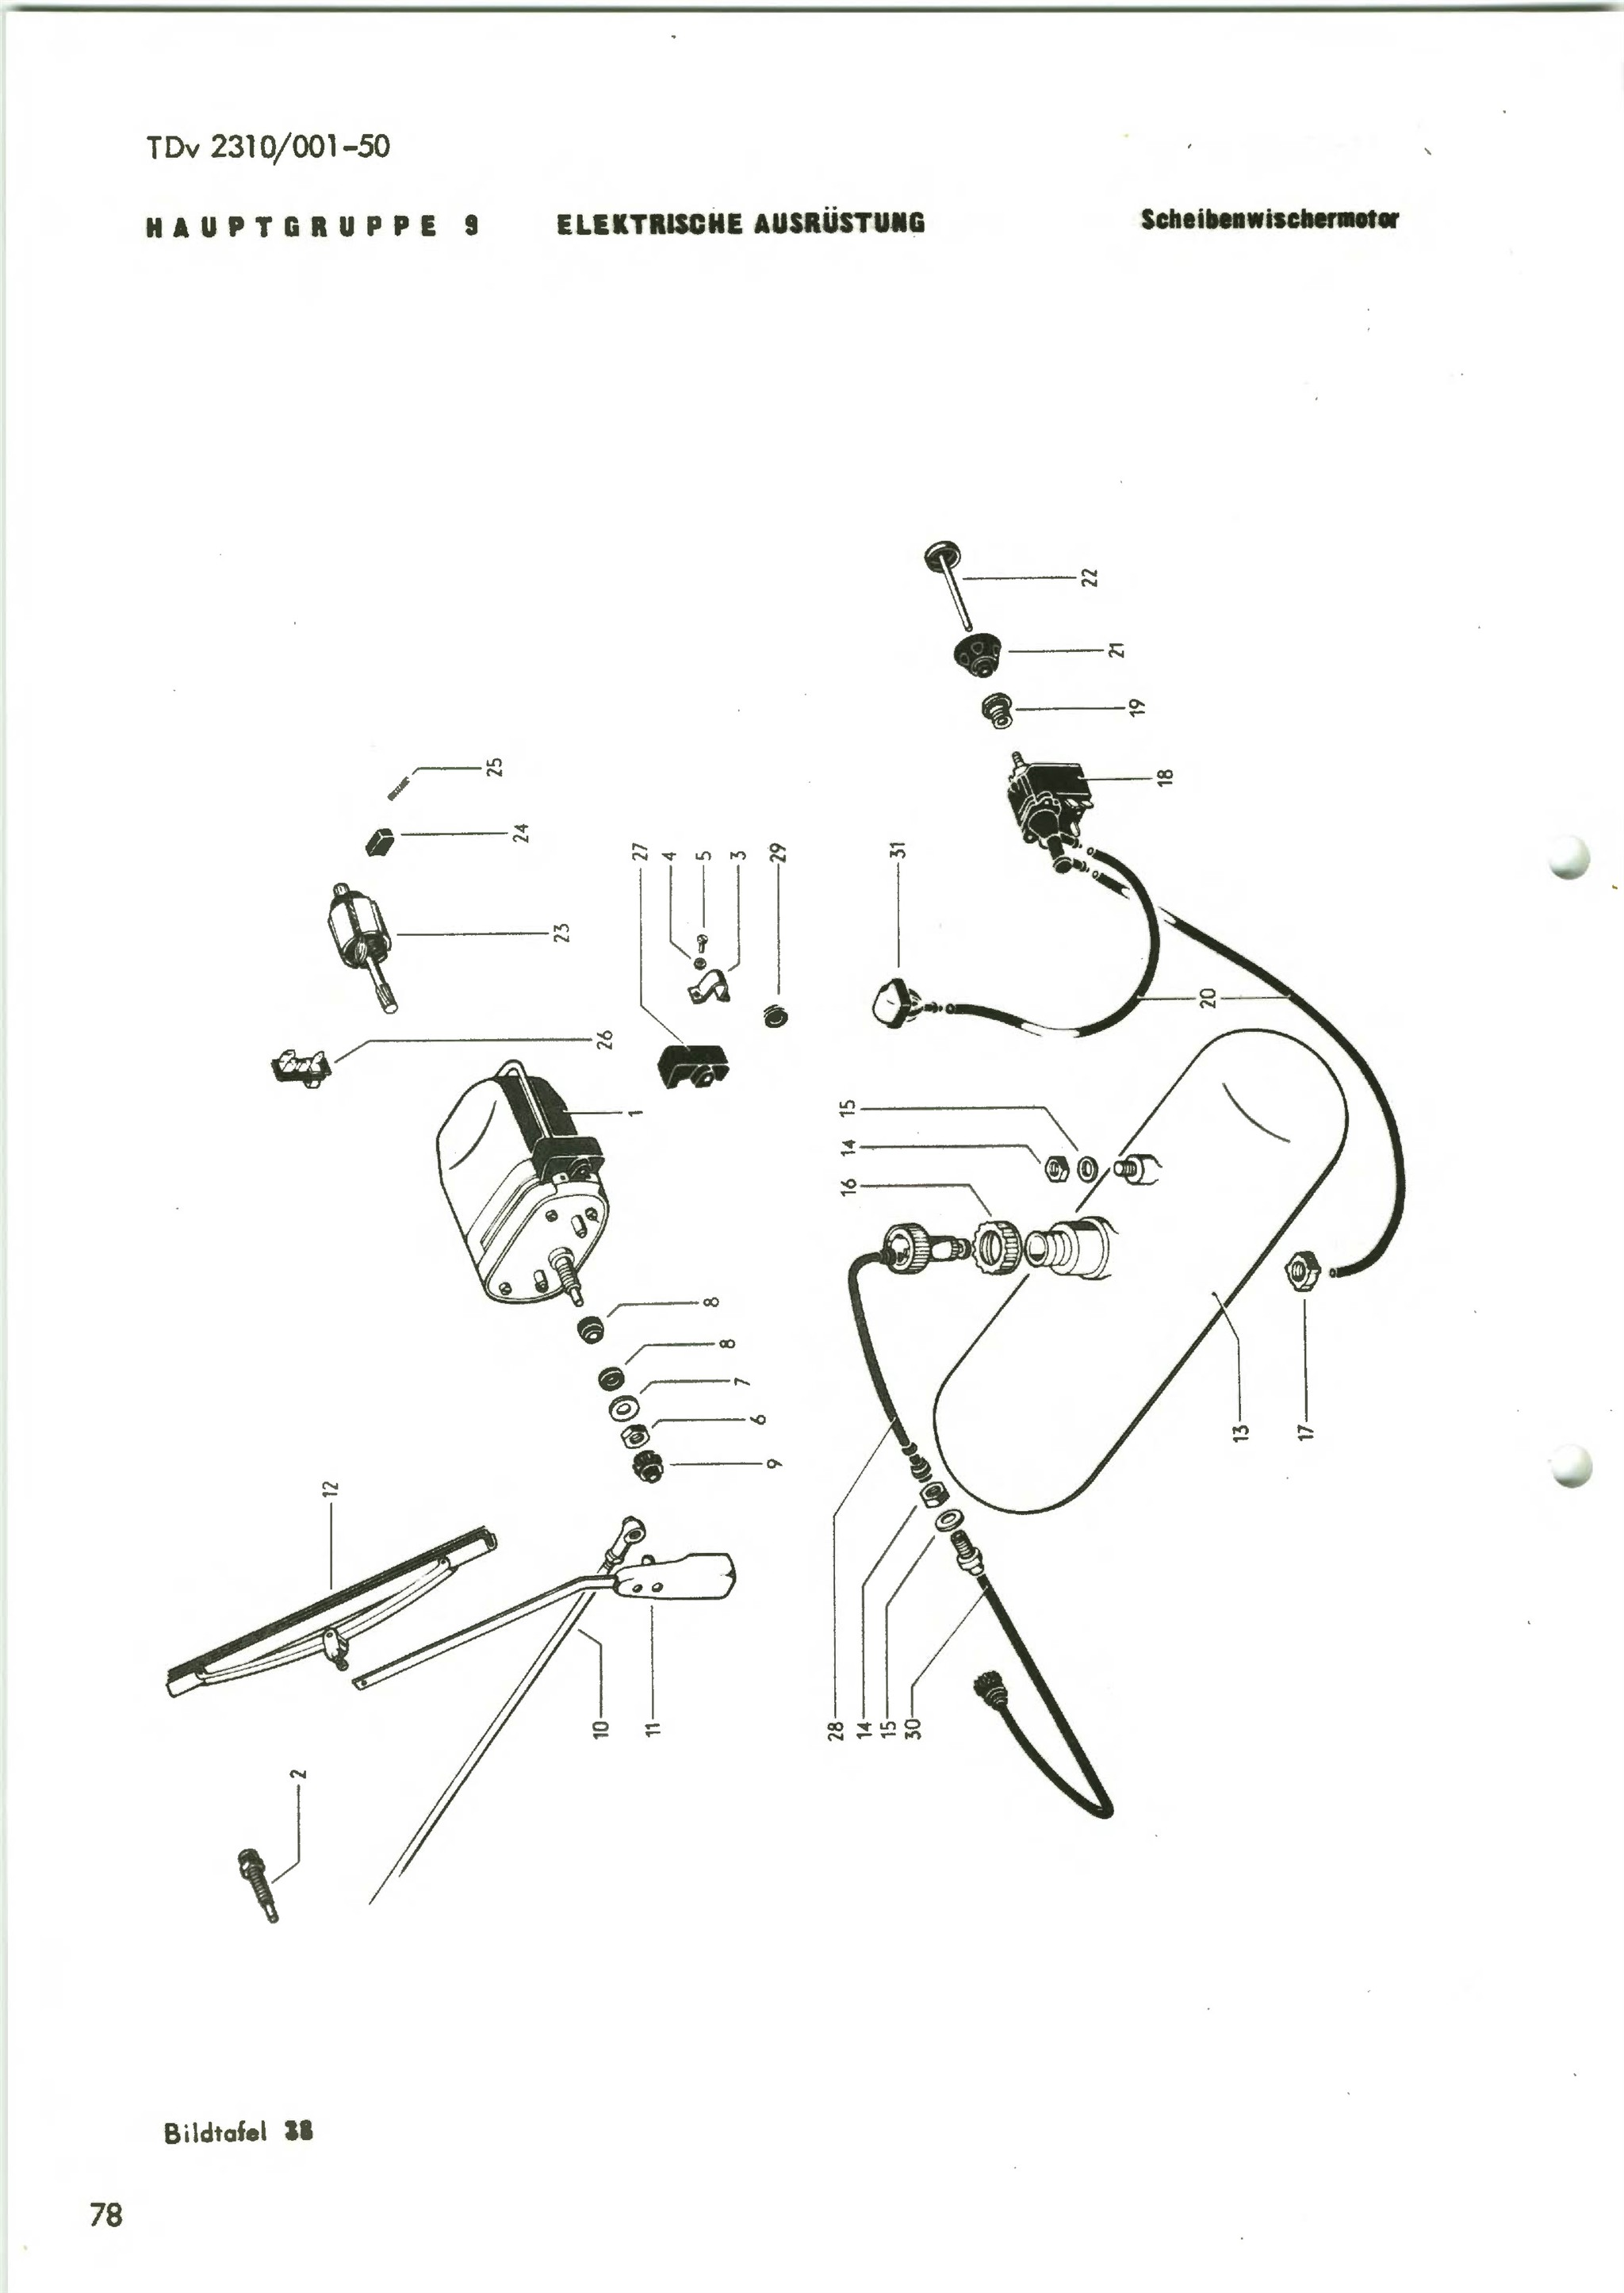 71 Super Beetle Fuse Box Wiring Diagram. Diagrams. Wiring